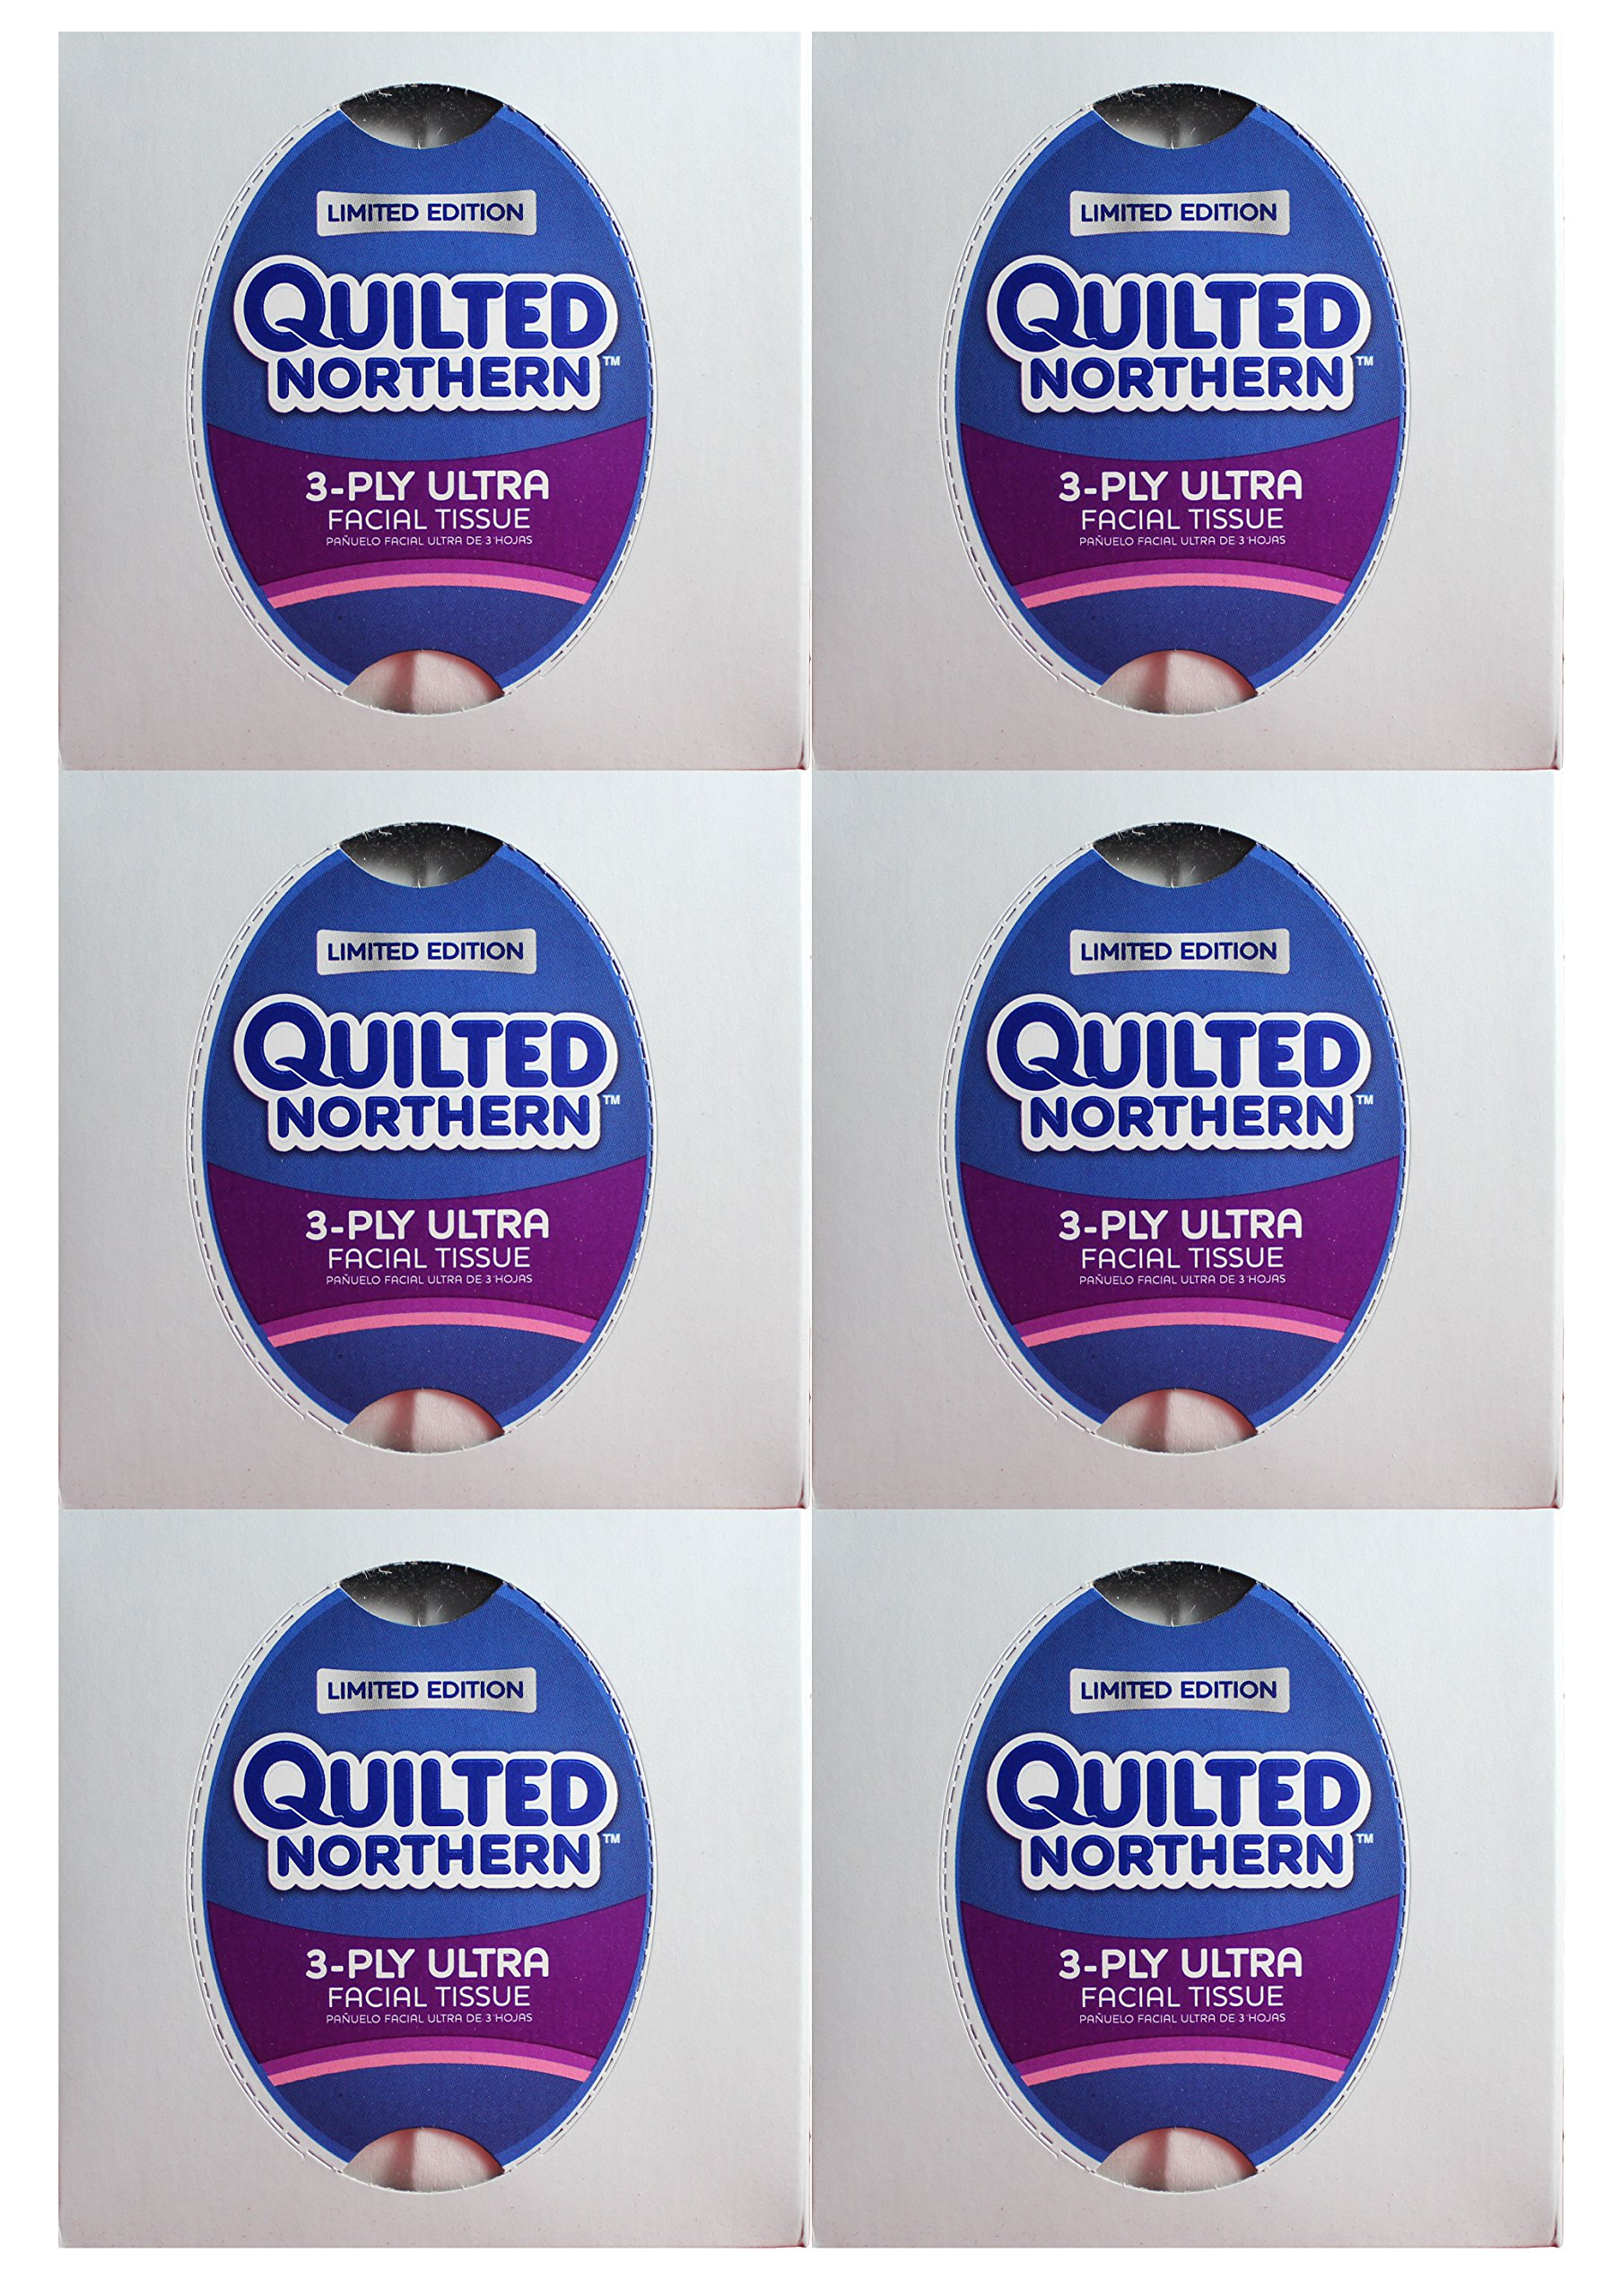 Quilted Northern Ultra Facial Tissue Cube (6 Boxes)